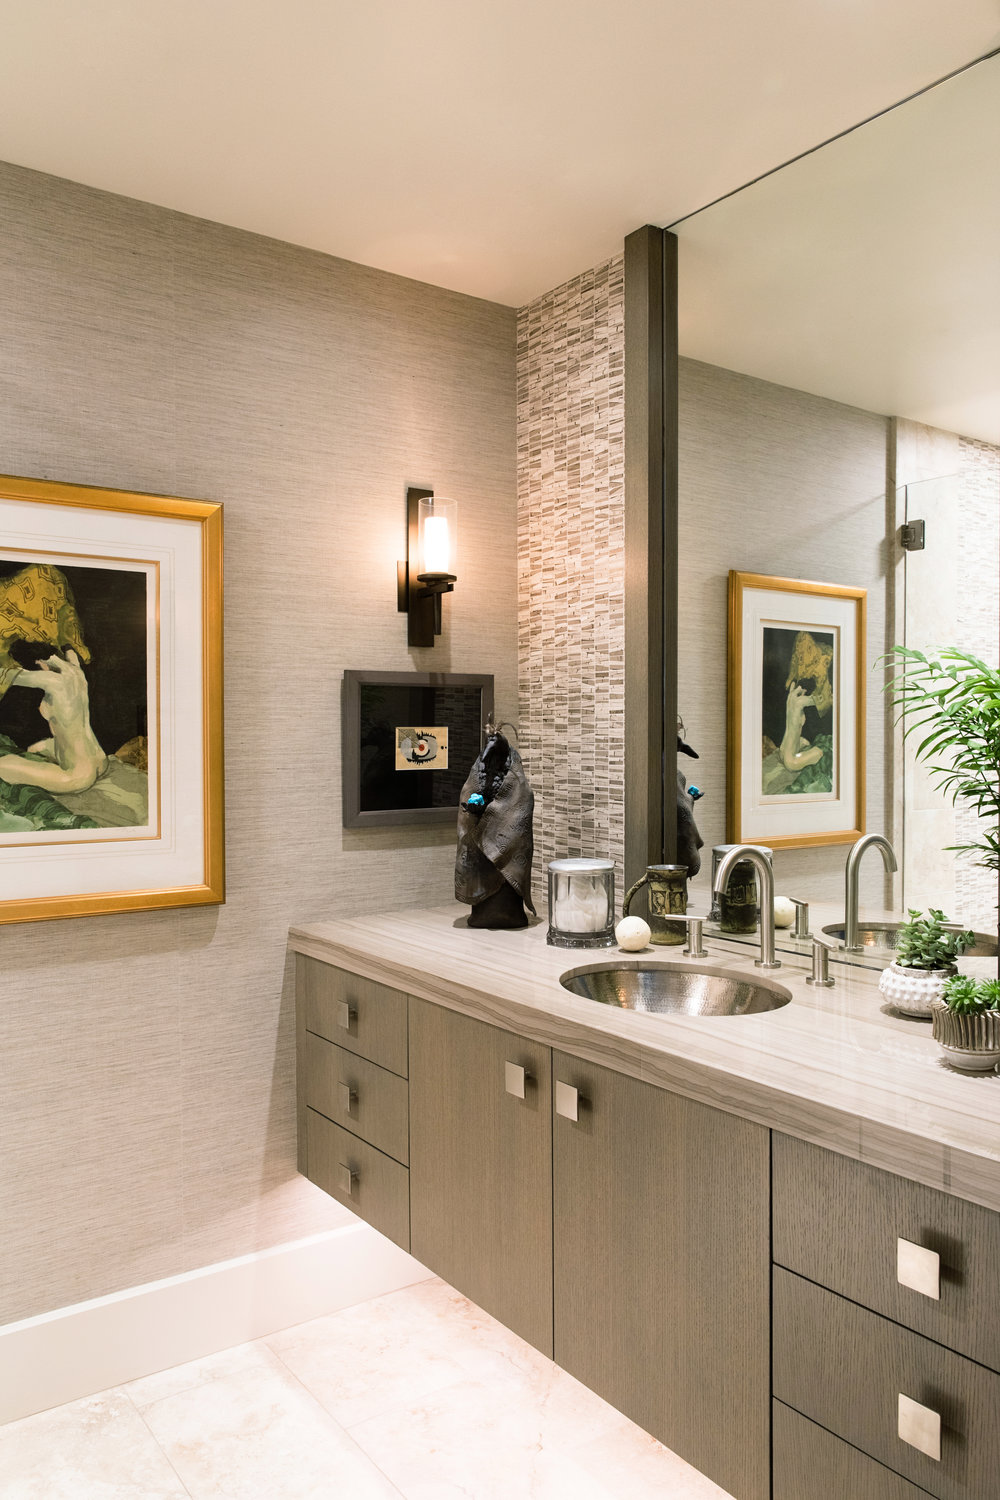 Fine art enlivens the modern guest bath.